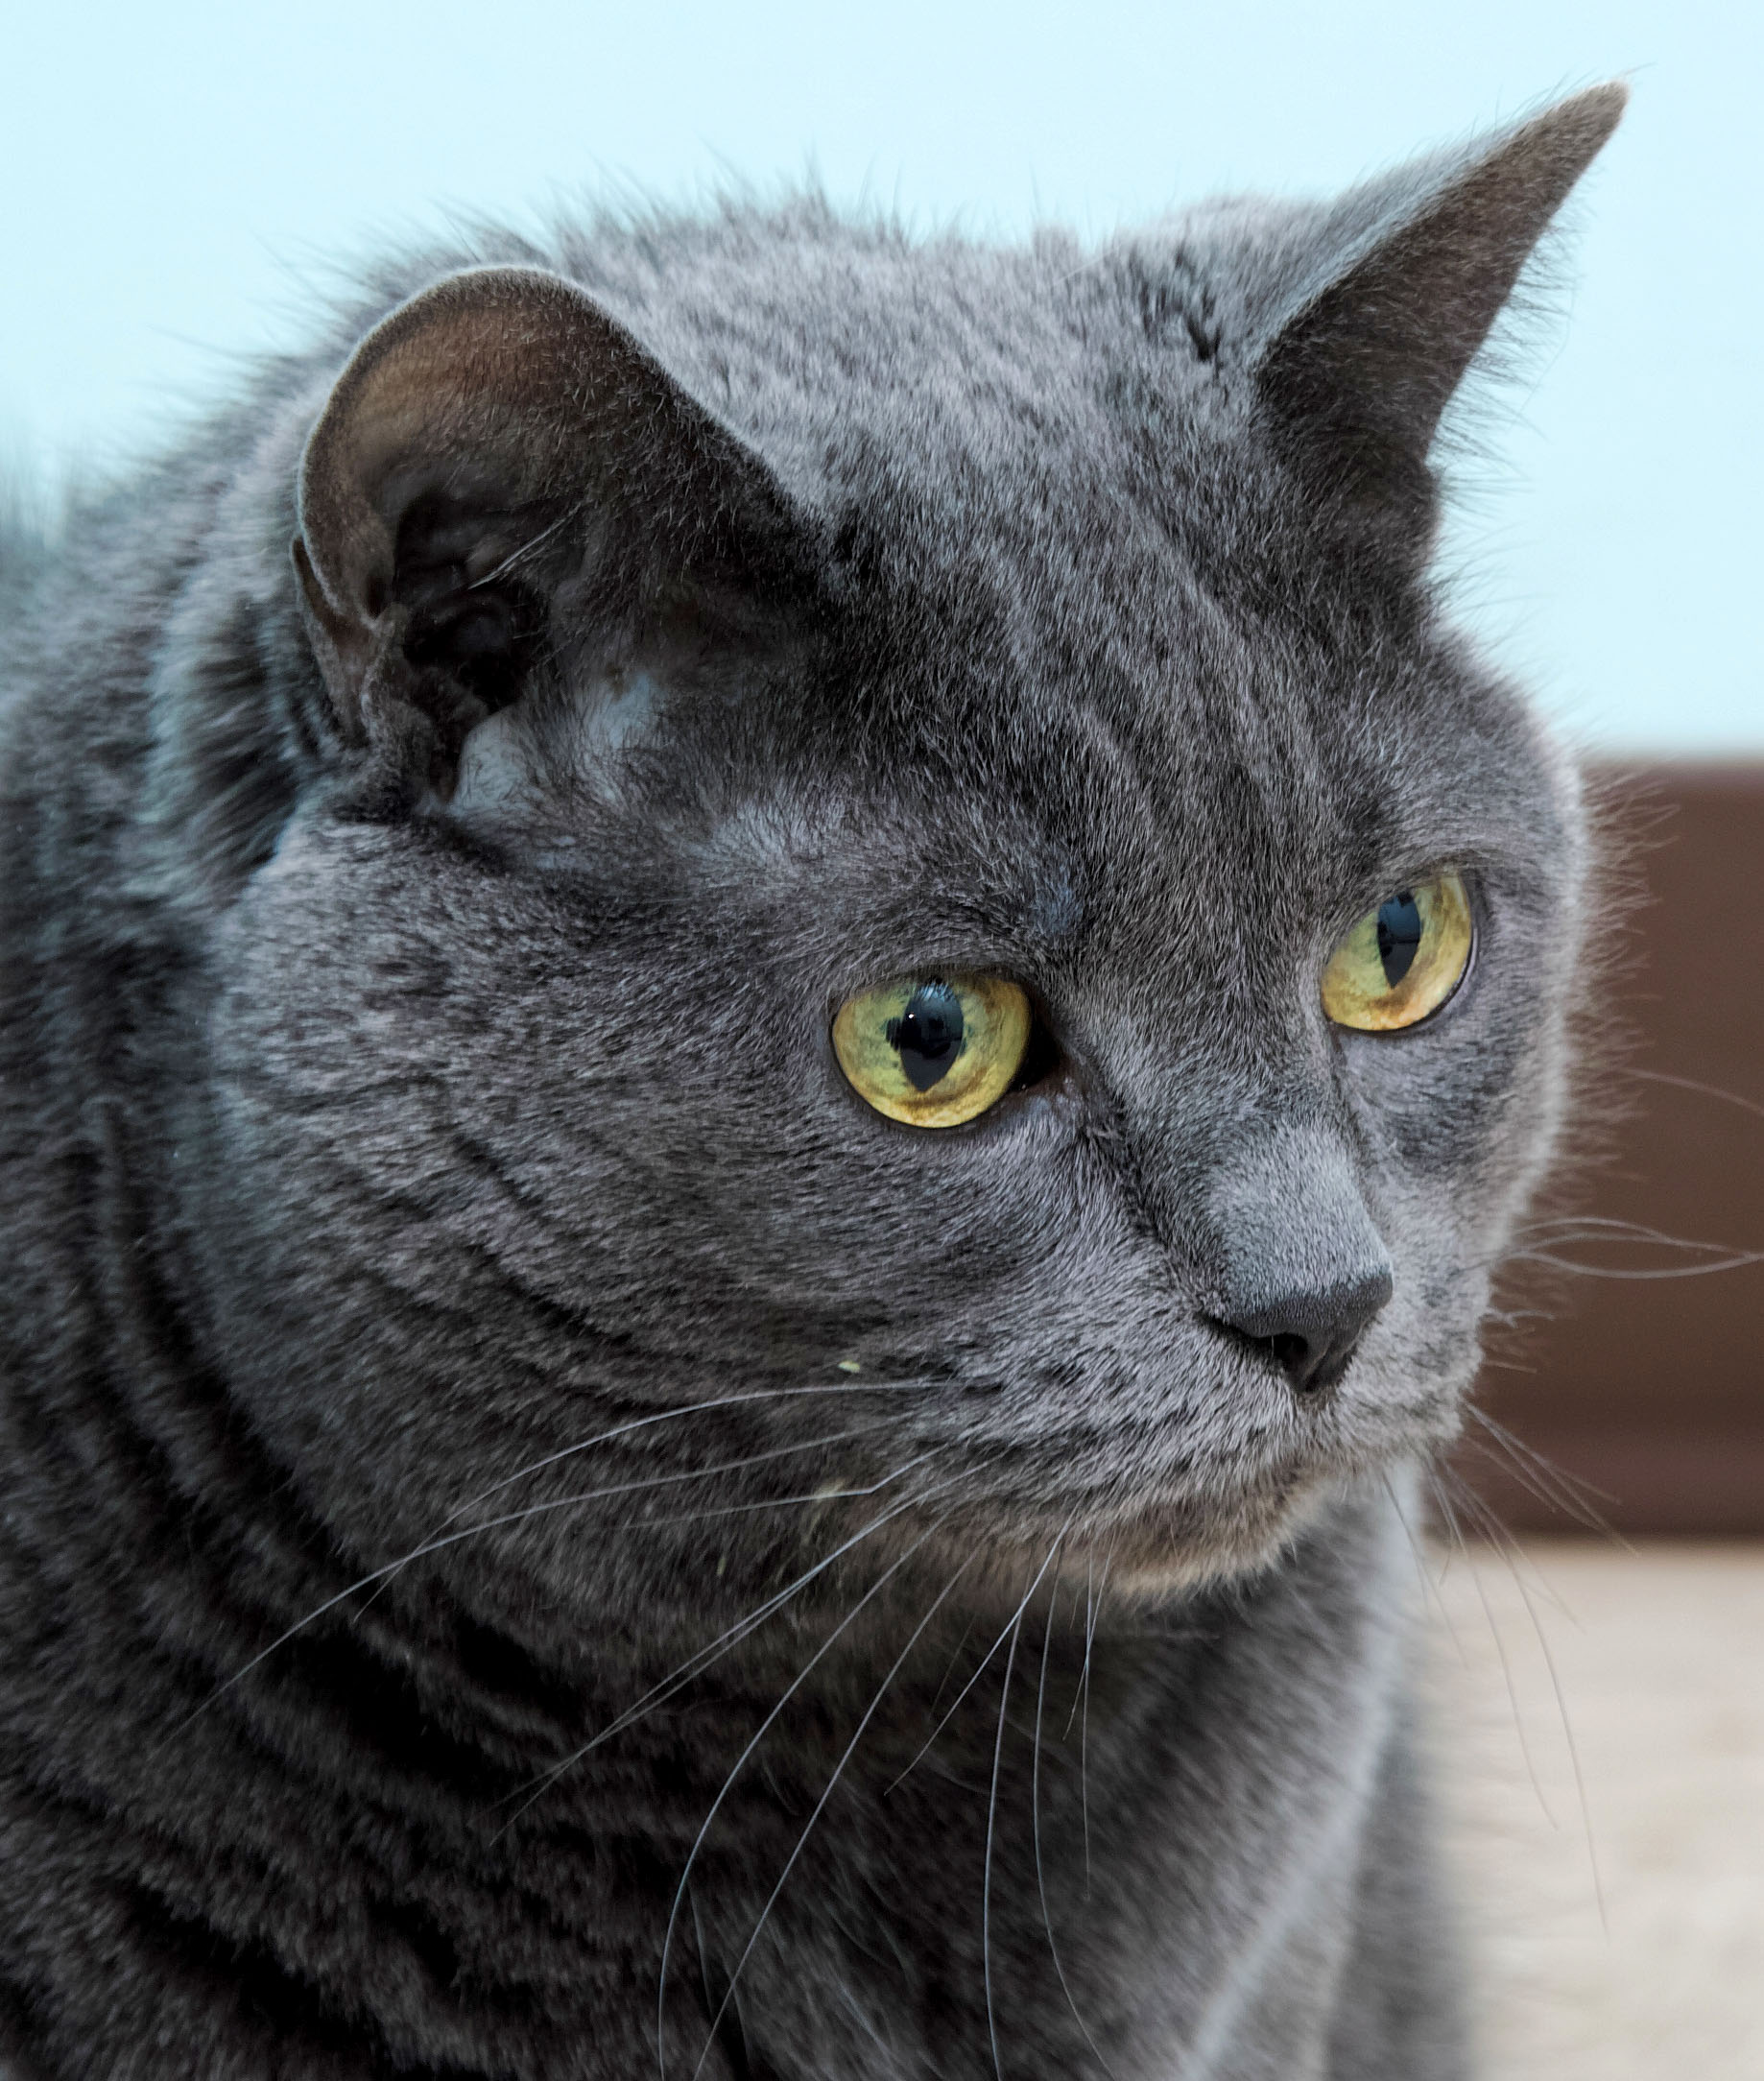 Annabelle is a 10-year-old 4 paw declawed domestic short hair. She likes attention, but on her terms. She is a full figured lady who doesn't appreciate being picked up. She will jump in your lap when she is ready, when she does, she is a purr machine!